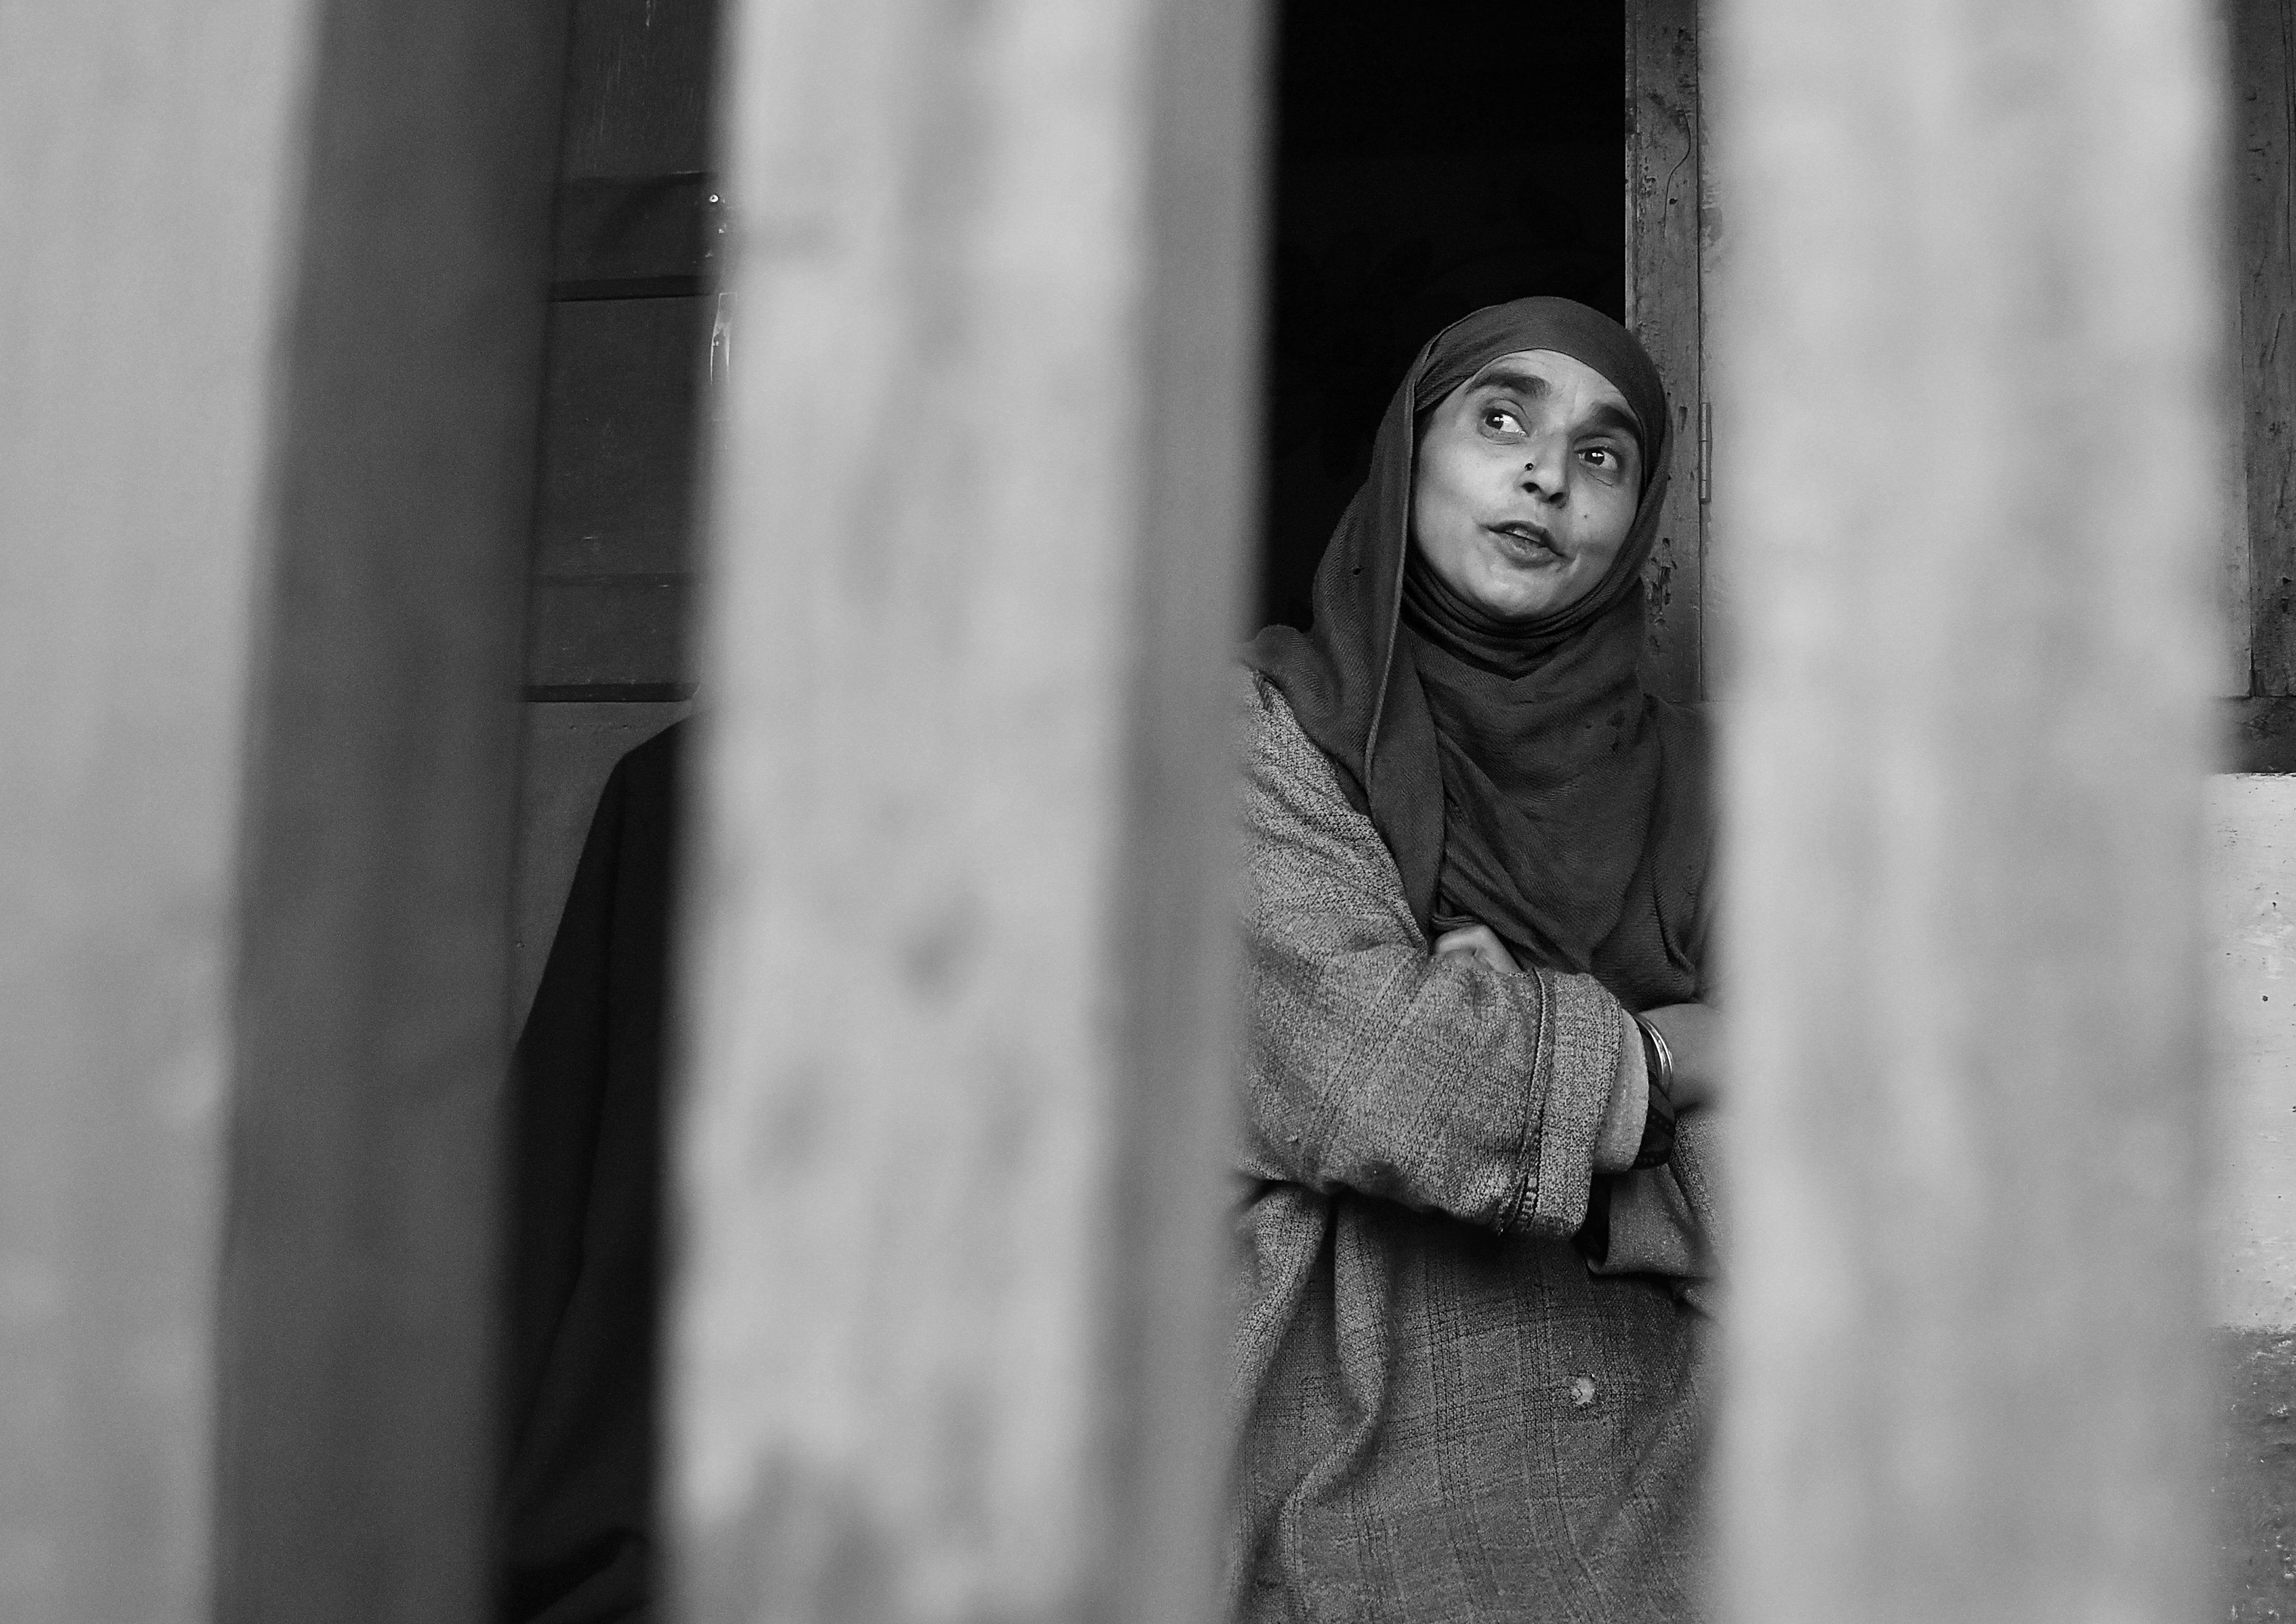 After losing two husbands to the conflict in Kashmir Shareefa Begum is choosing to adapt to a life of ostracism and poverty rather than marry for a third time